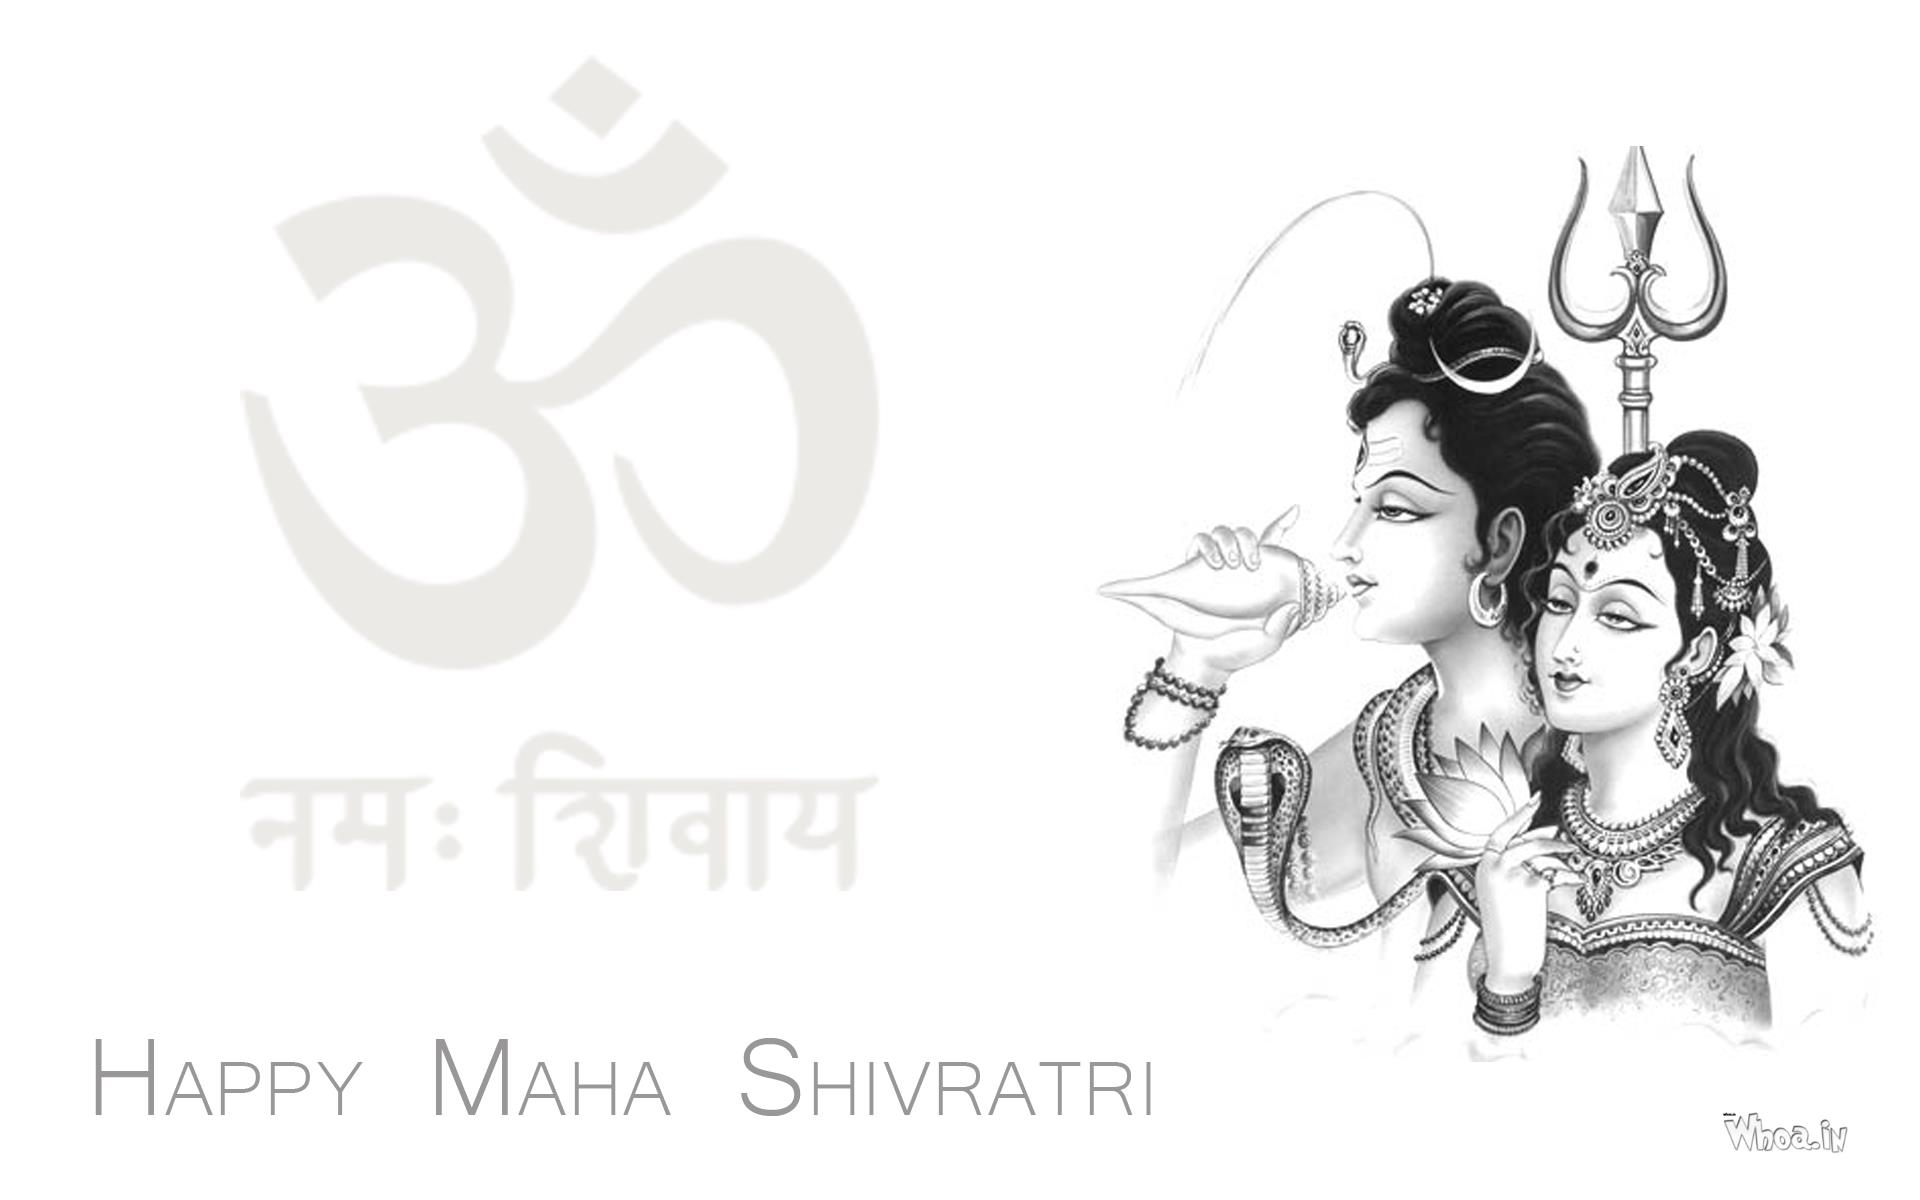 Happy maha shivratri greetings with lord shiva and parvati download m4hsunfo